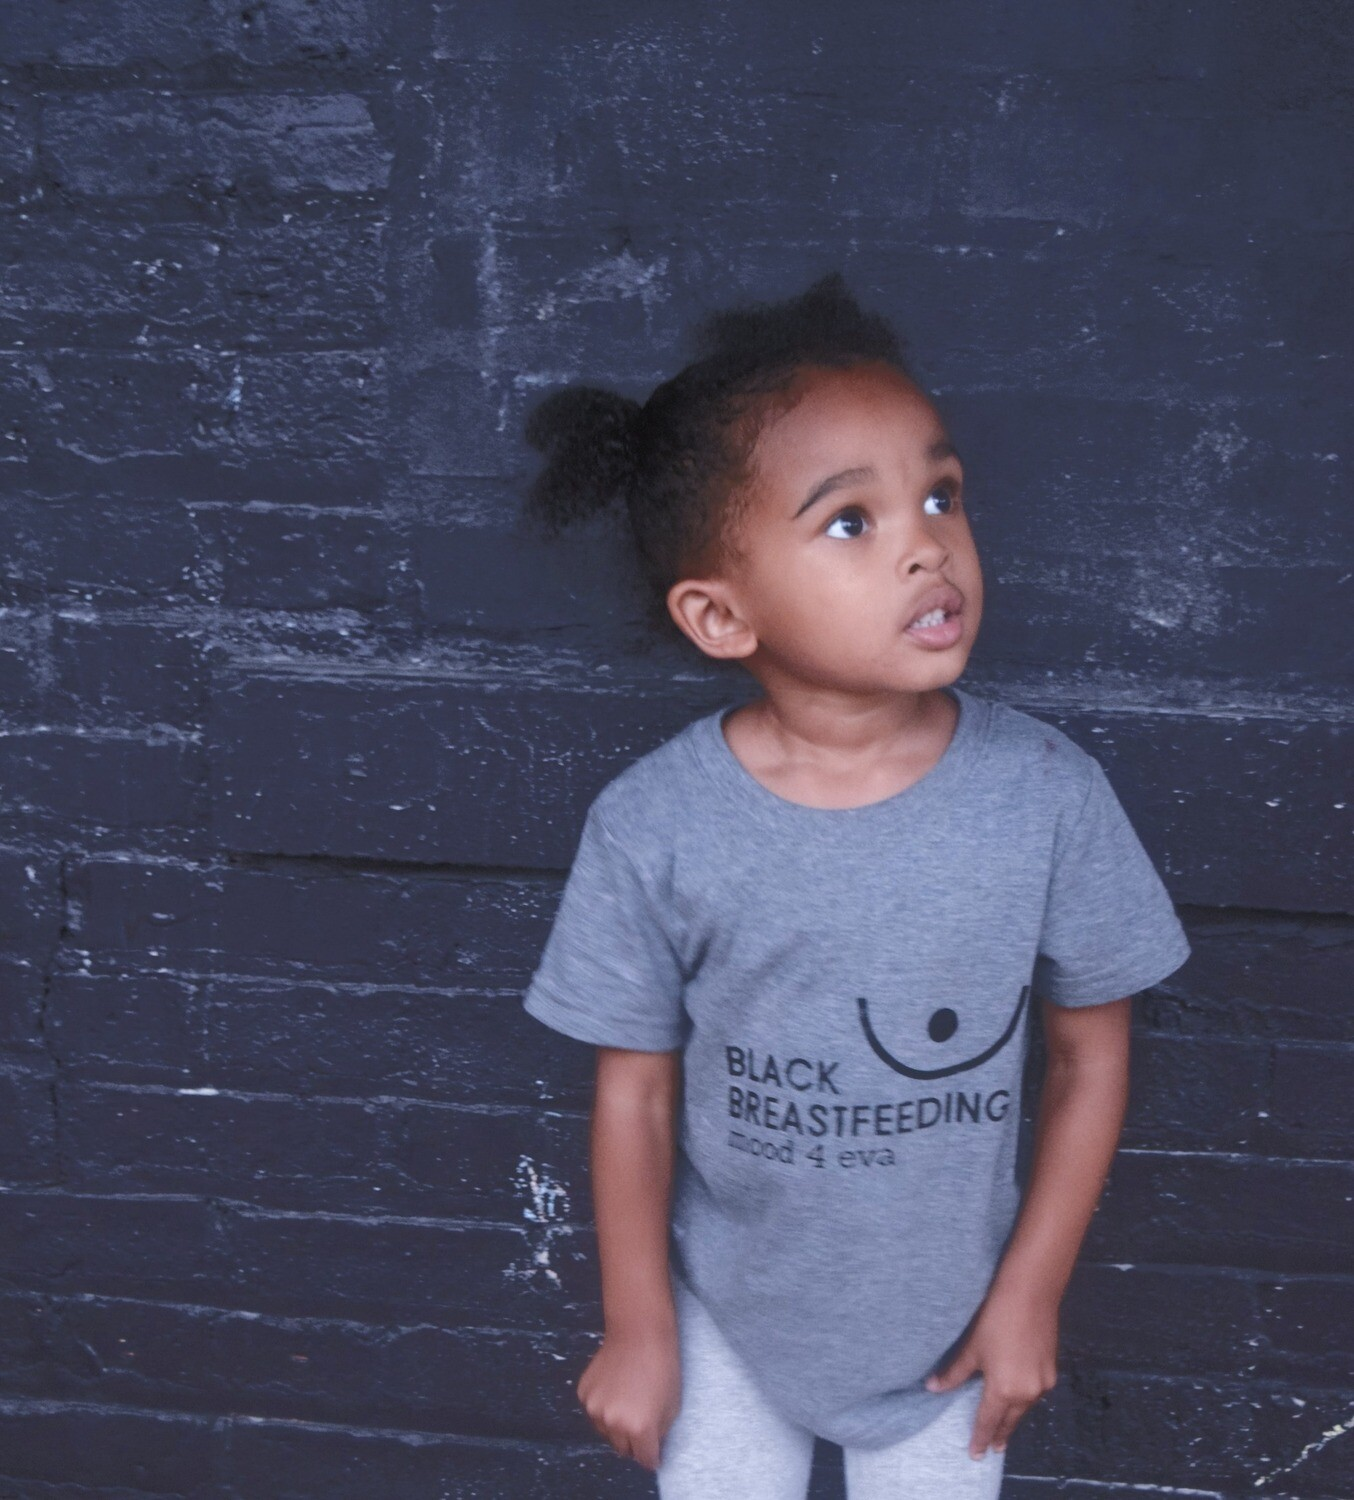 Toddler Black Breastfeeding Shirt